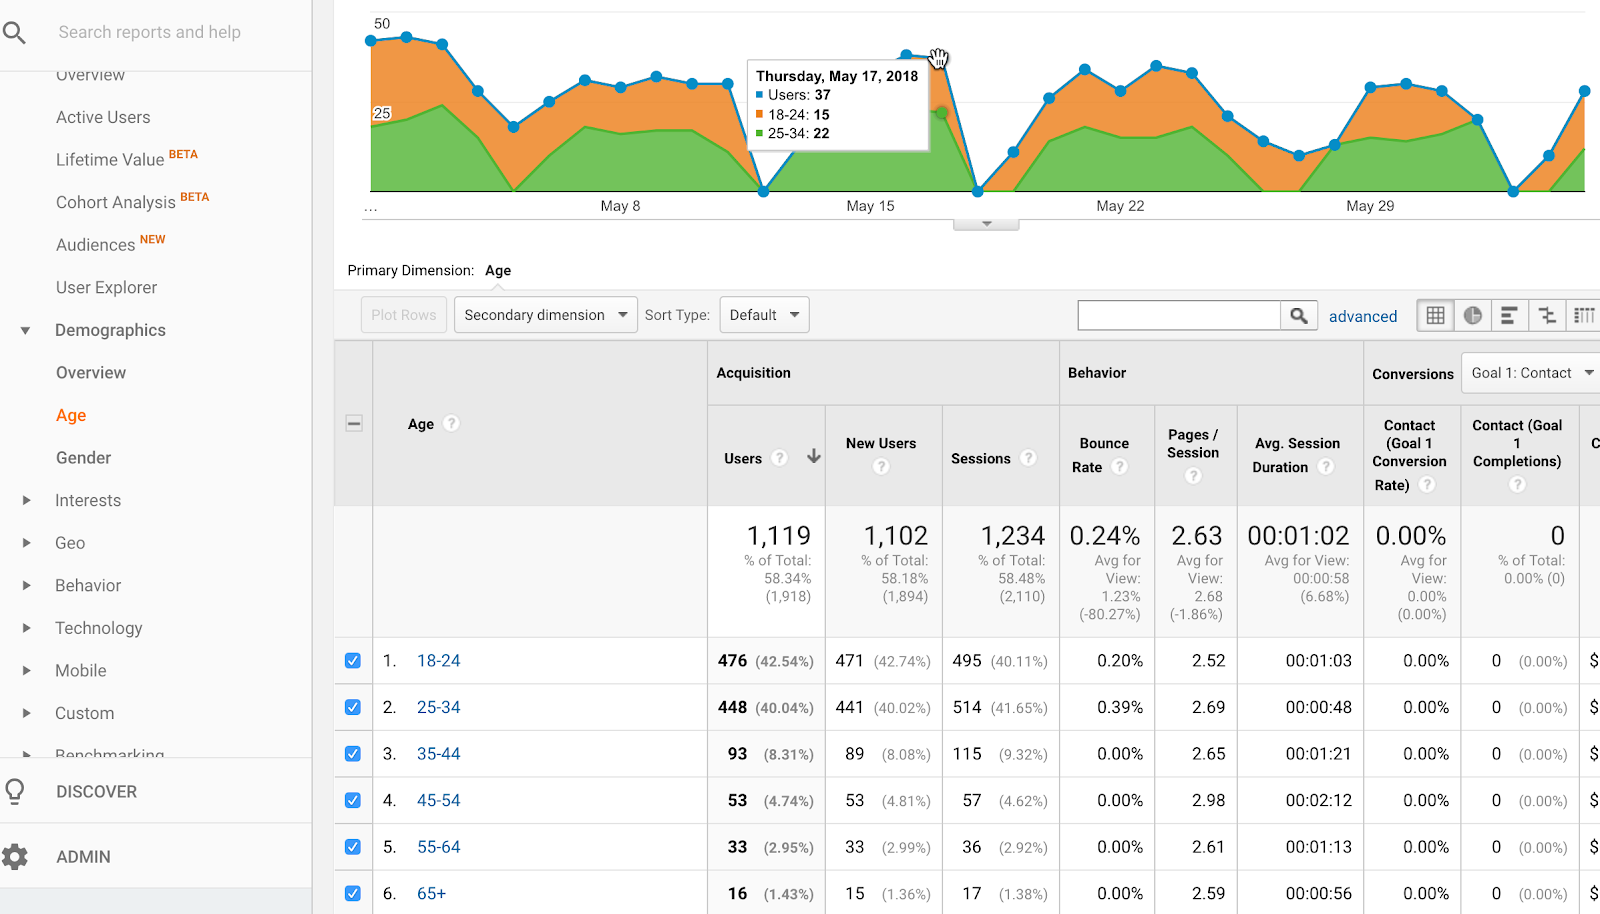 google analytics demographics data shows age of website visitors